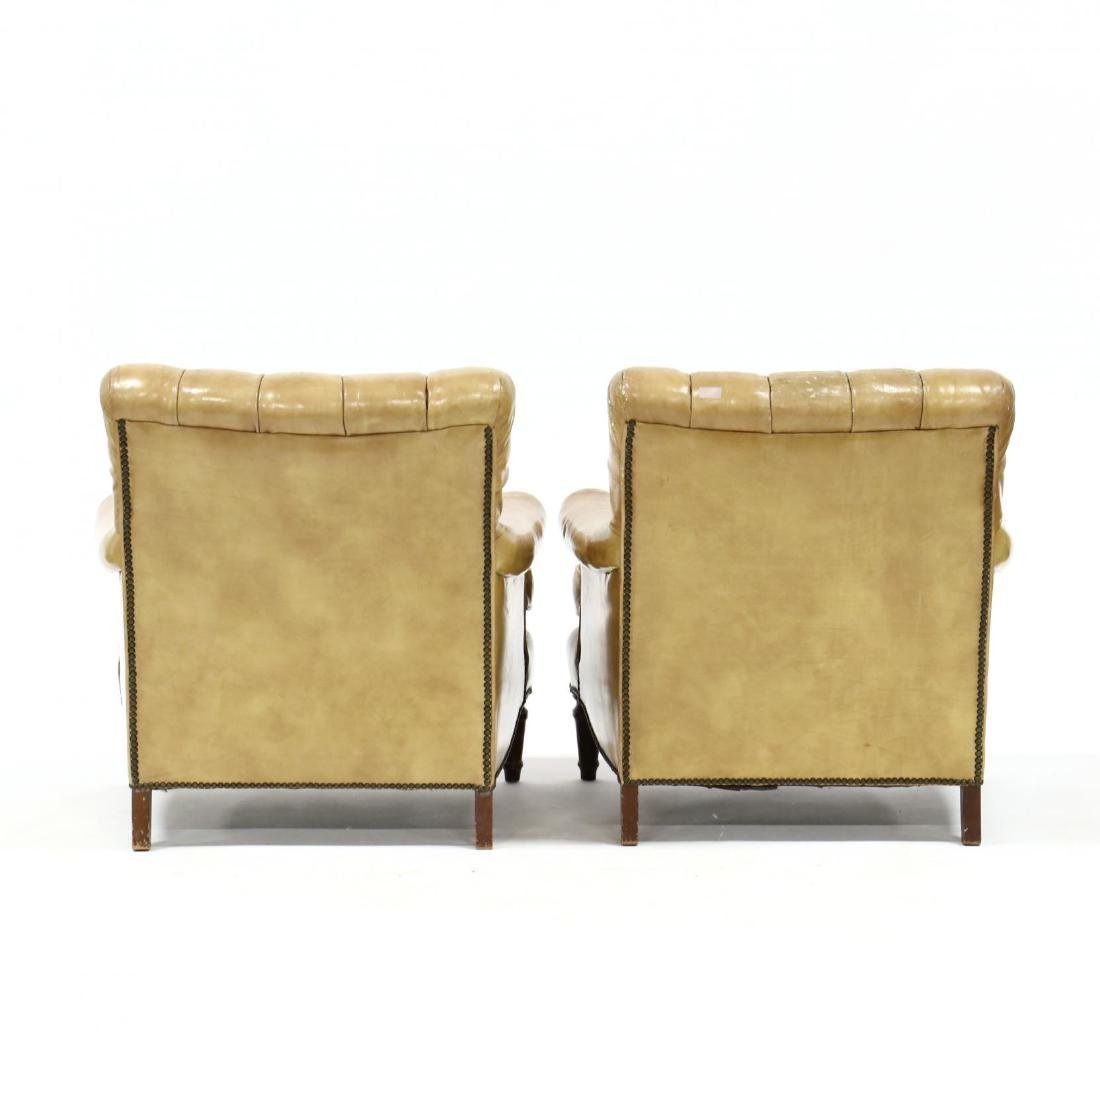 Pair of Vintage Leather Upholstered Club Chairs - 4